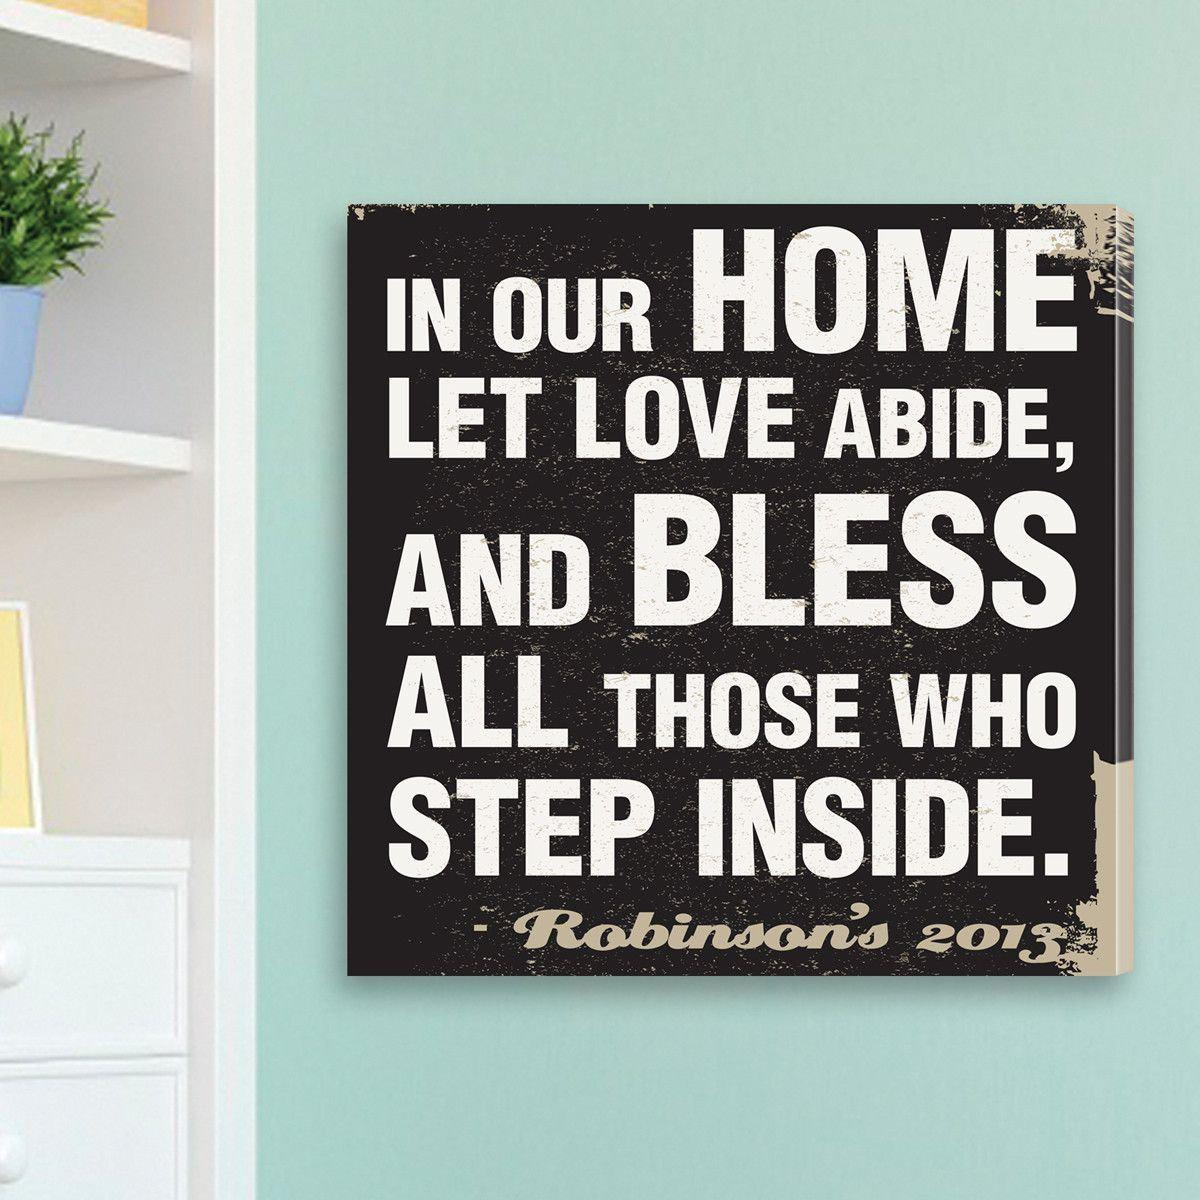 Personalized-Antique-Style-Prayer-Canvas-Sign